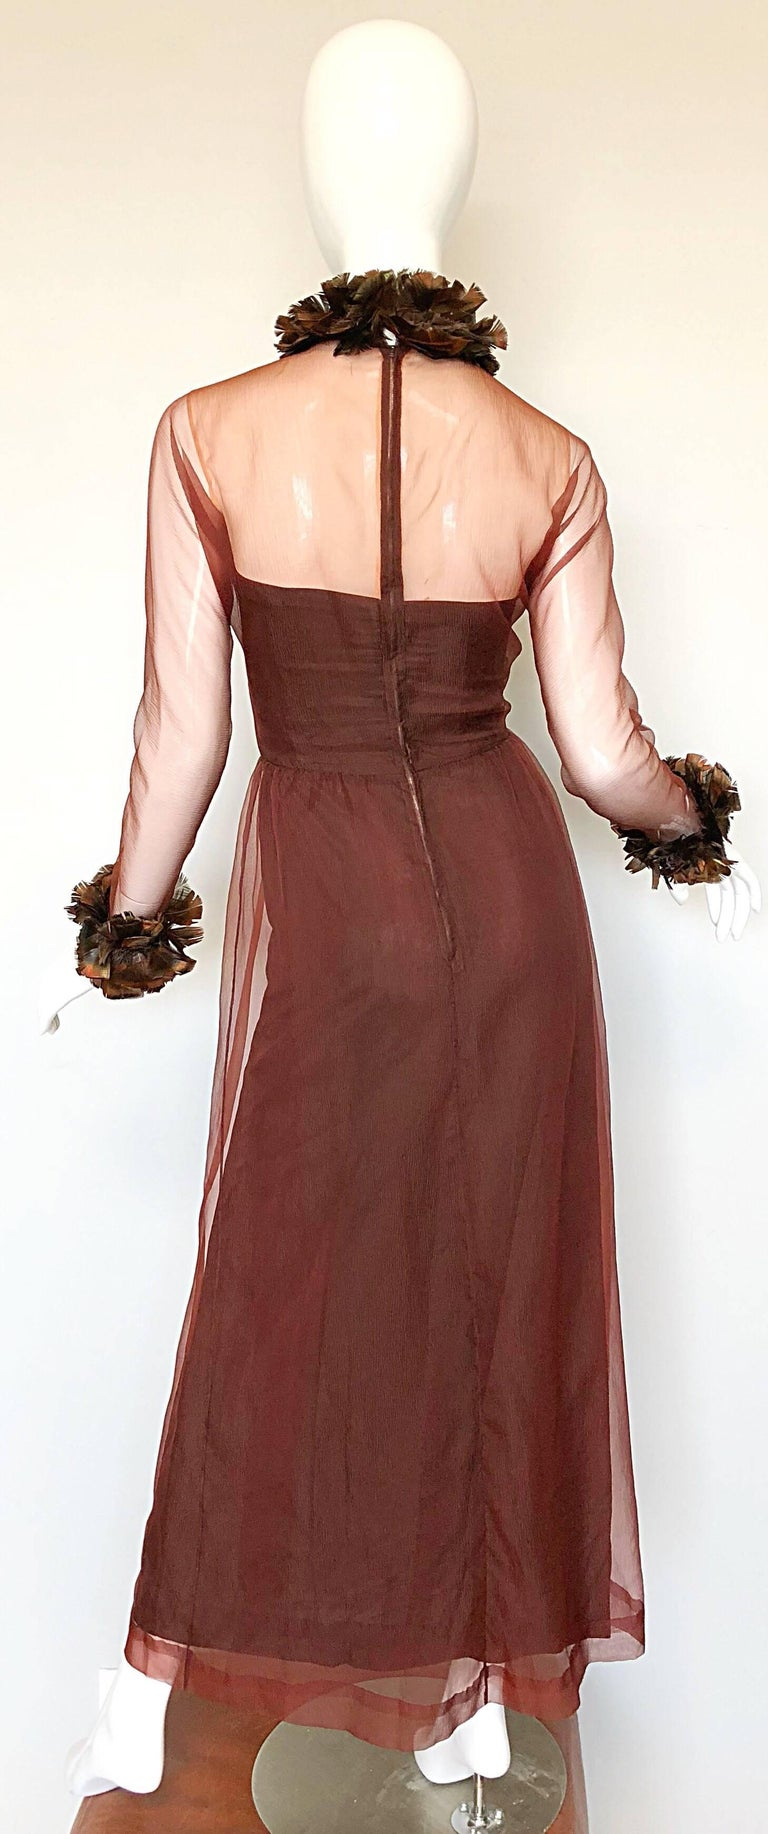 Women's Vintage Givenchy Couture Numbered 1960s Chocolate Brown Feathered Chiffon Gown For Sale